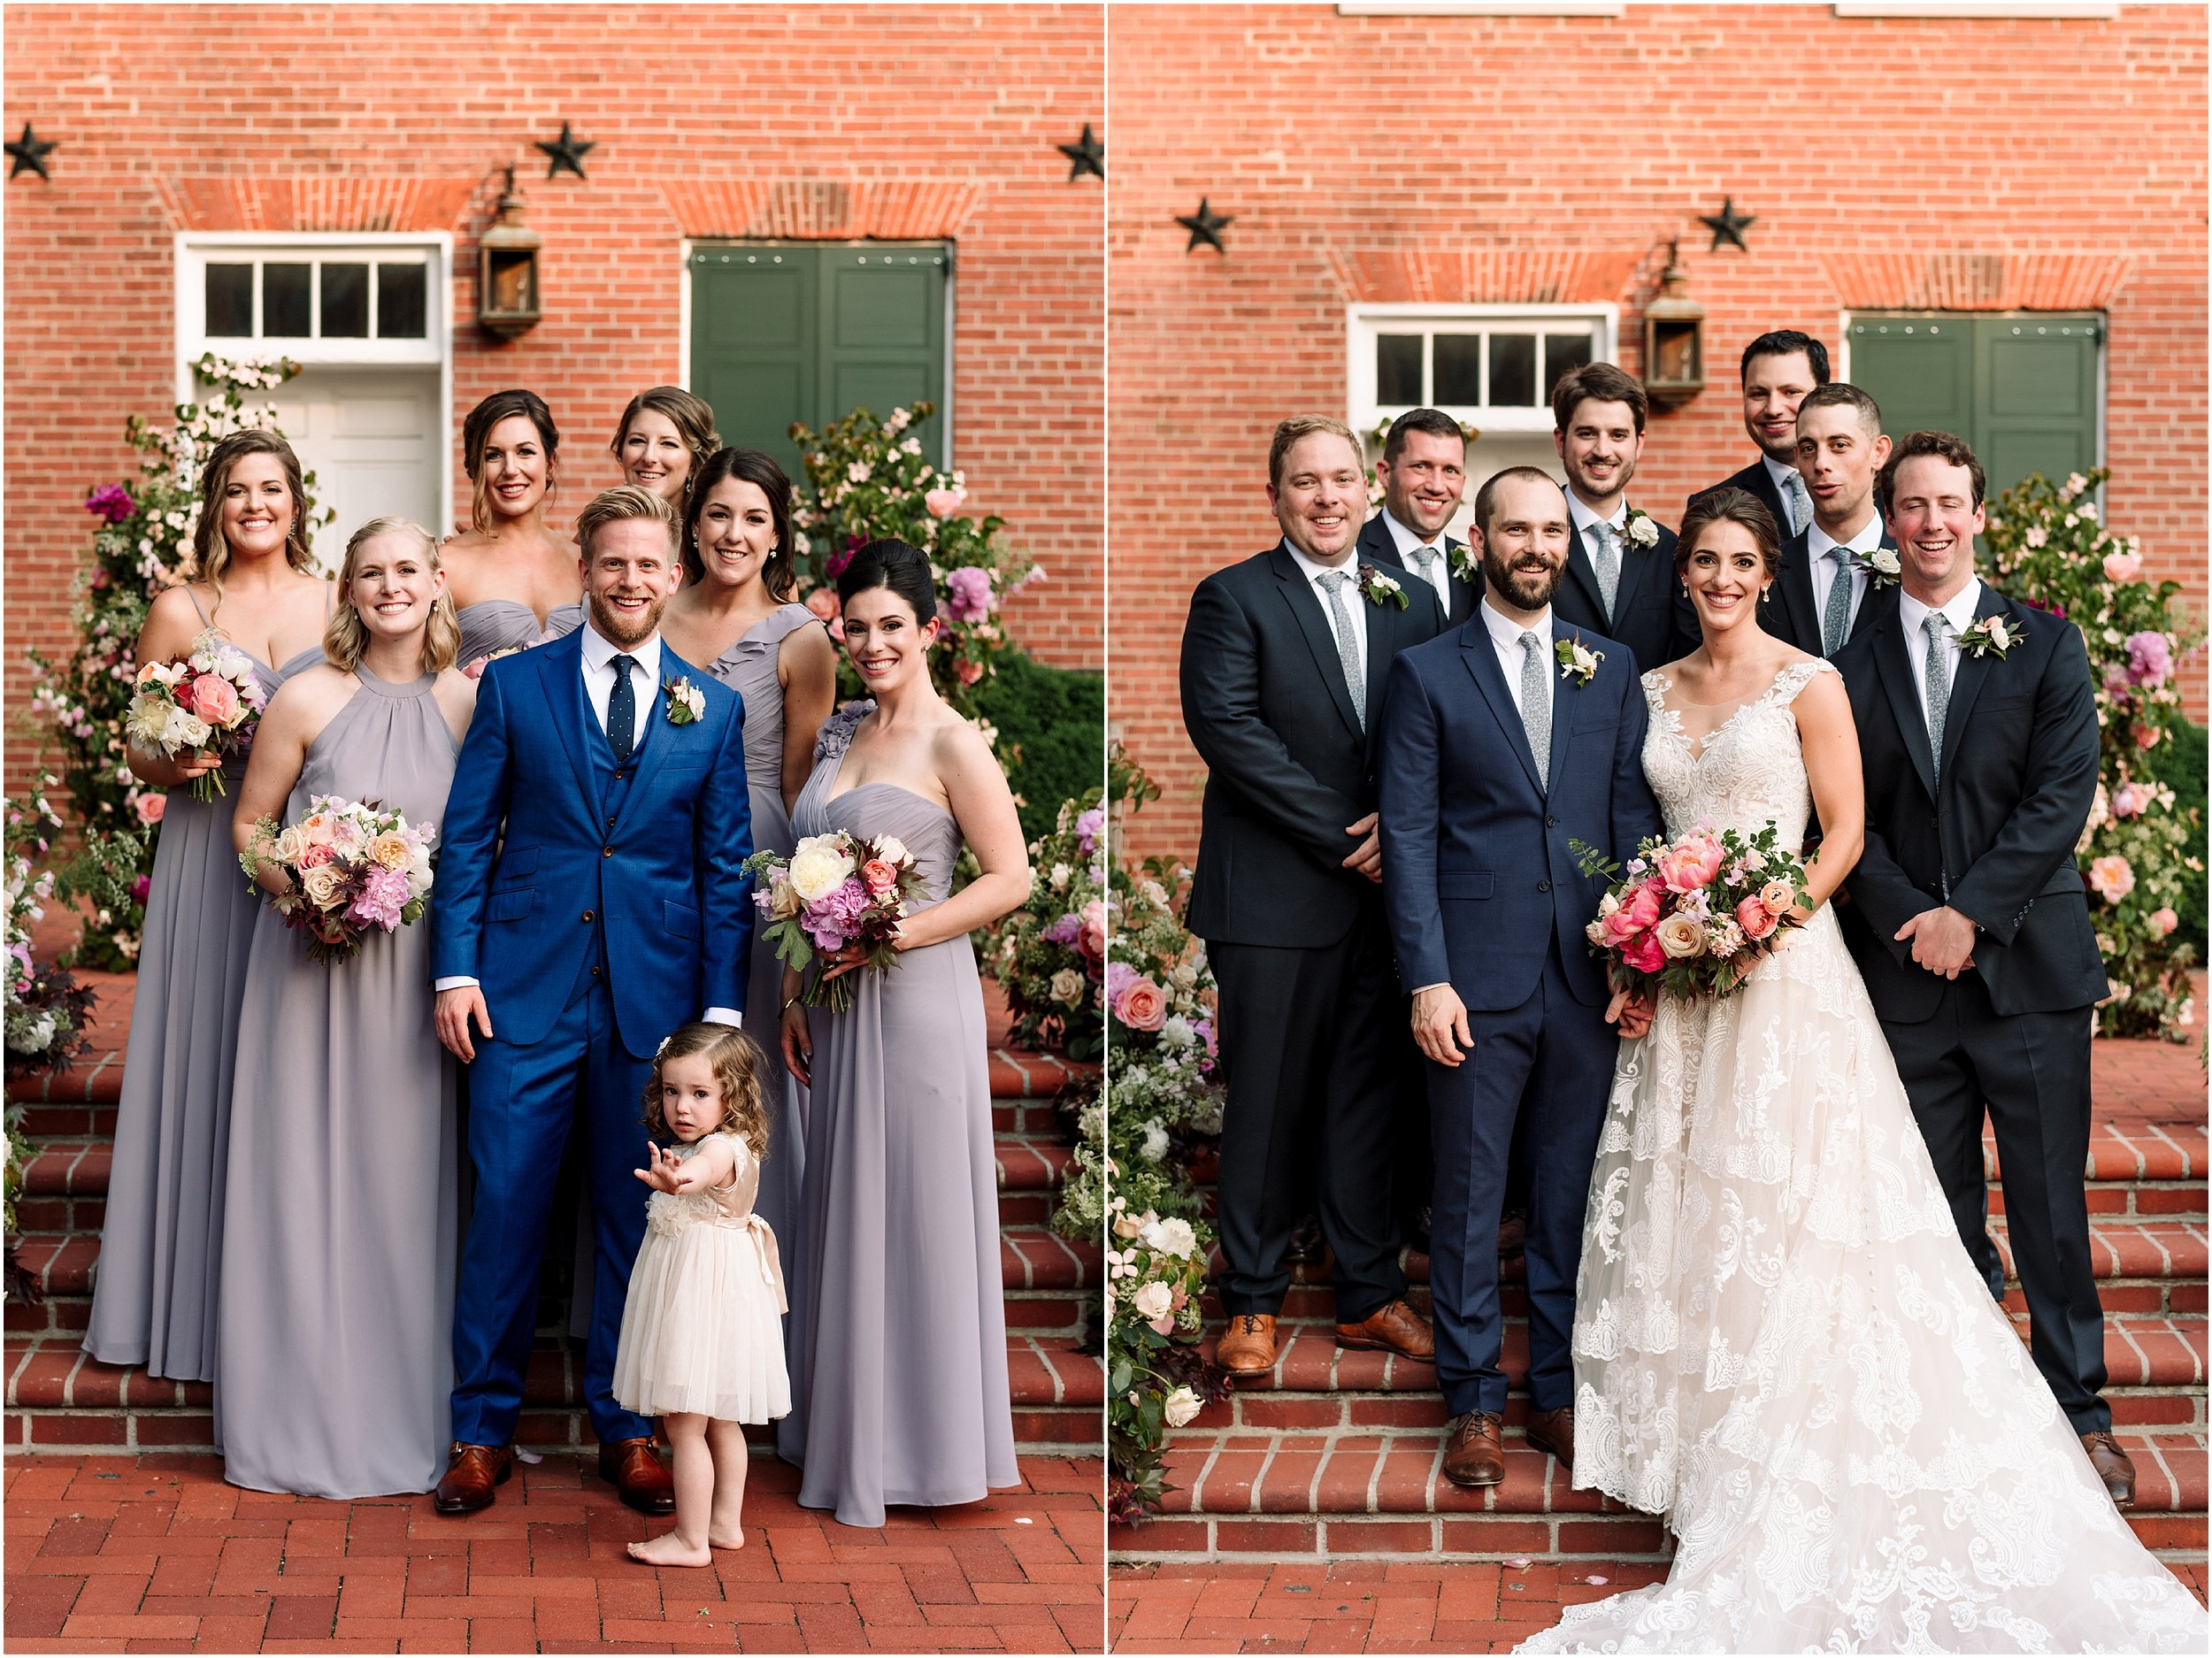 hannah leigh photography 1840s plaza wedding baltimore md_0071.jpg